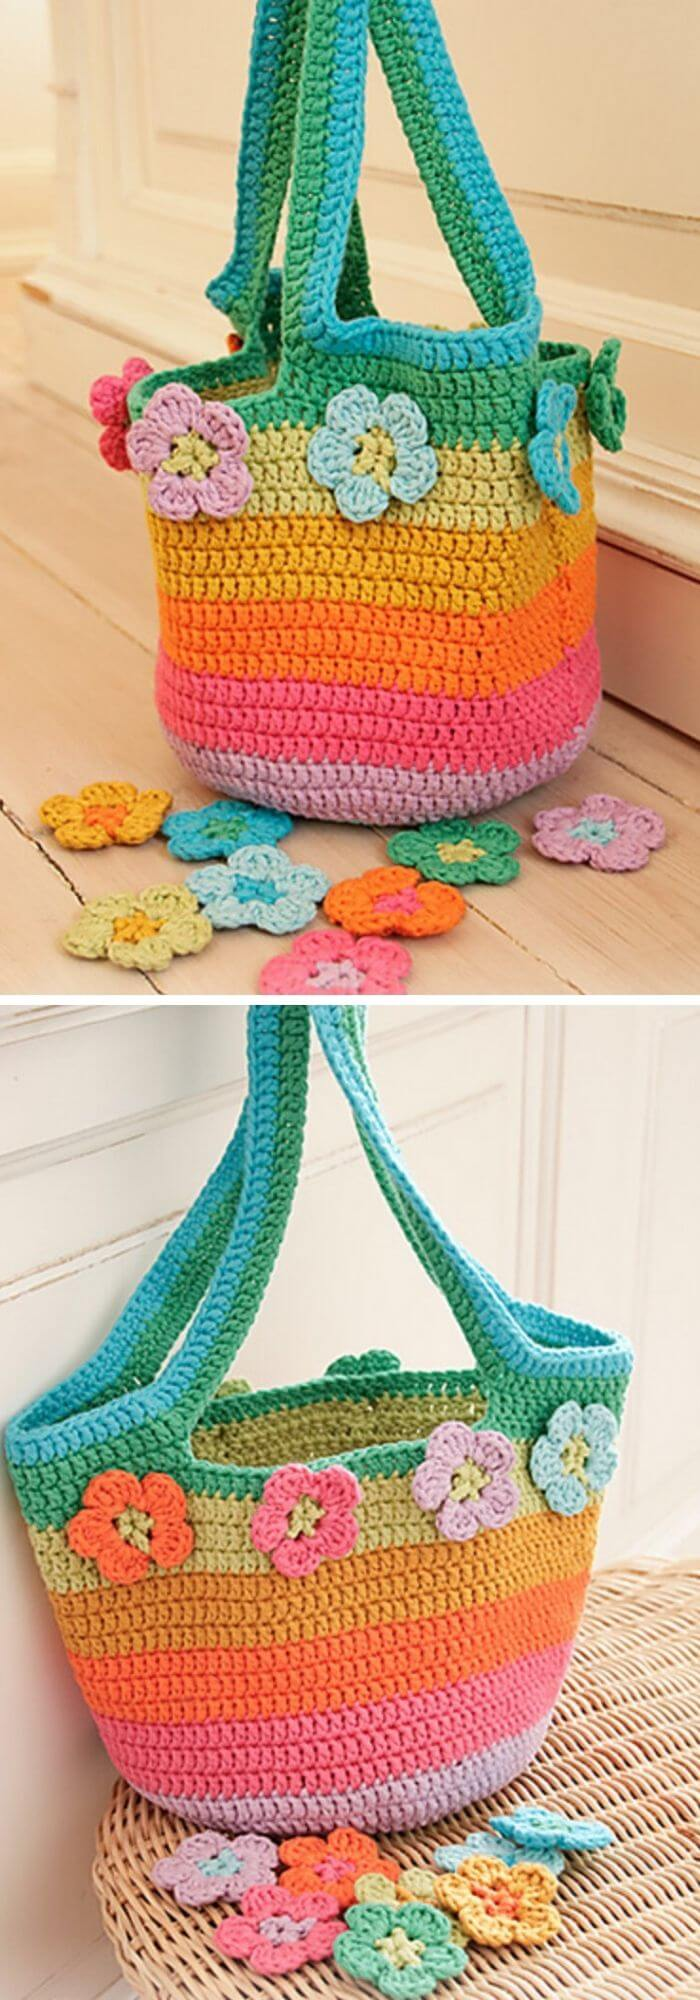 The crochet drops bag